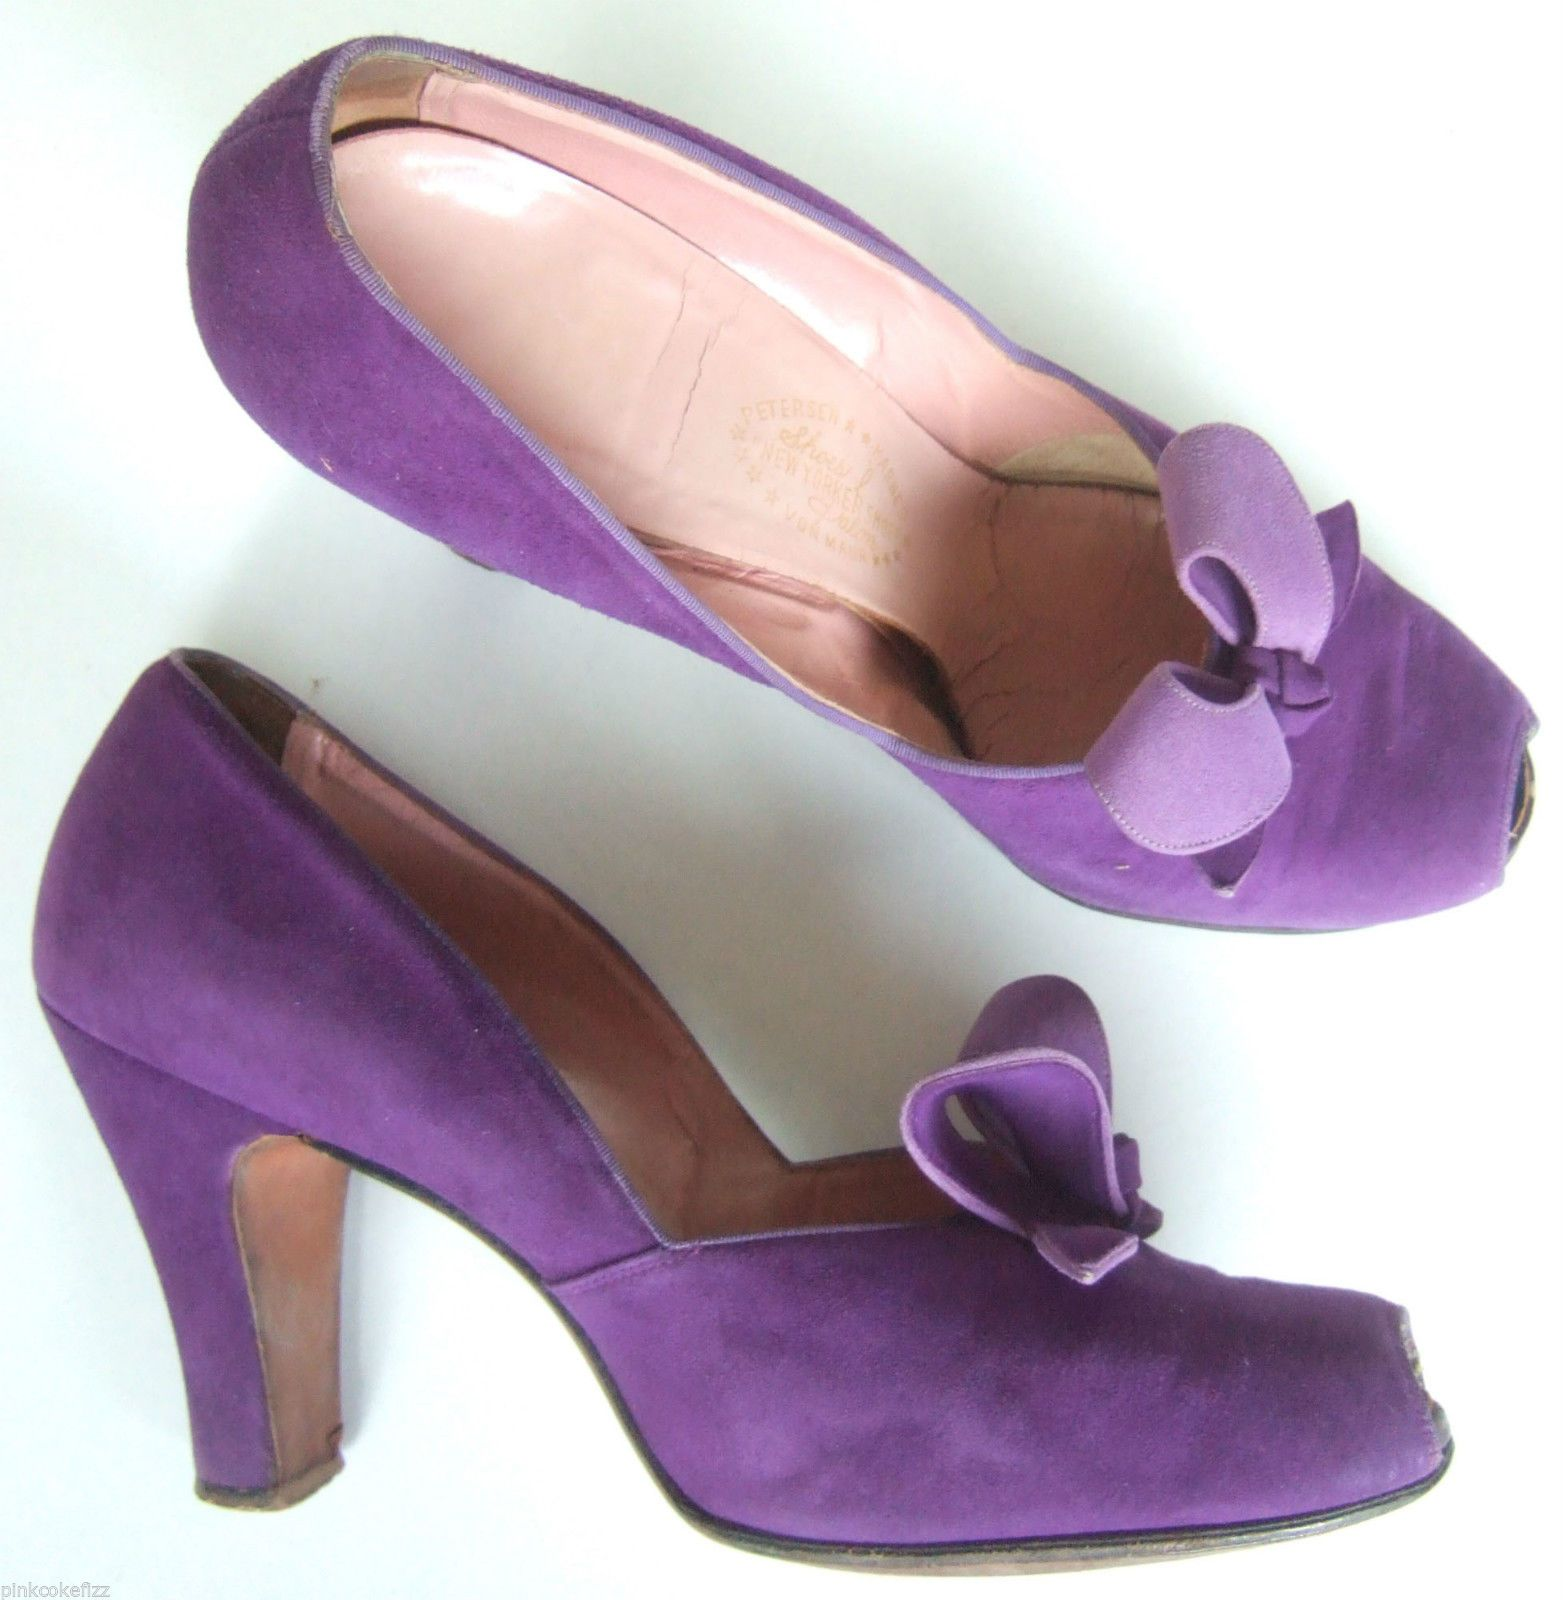 UK 7 40 9 Vintage 1940s purple suede court shoes bow front peep ...